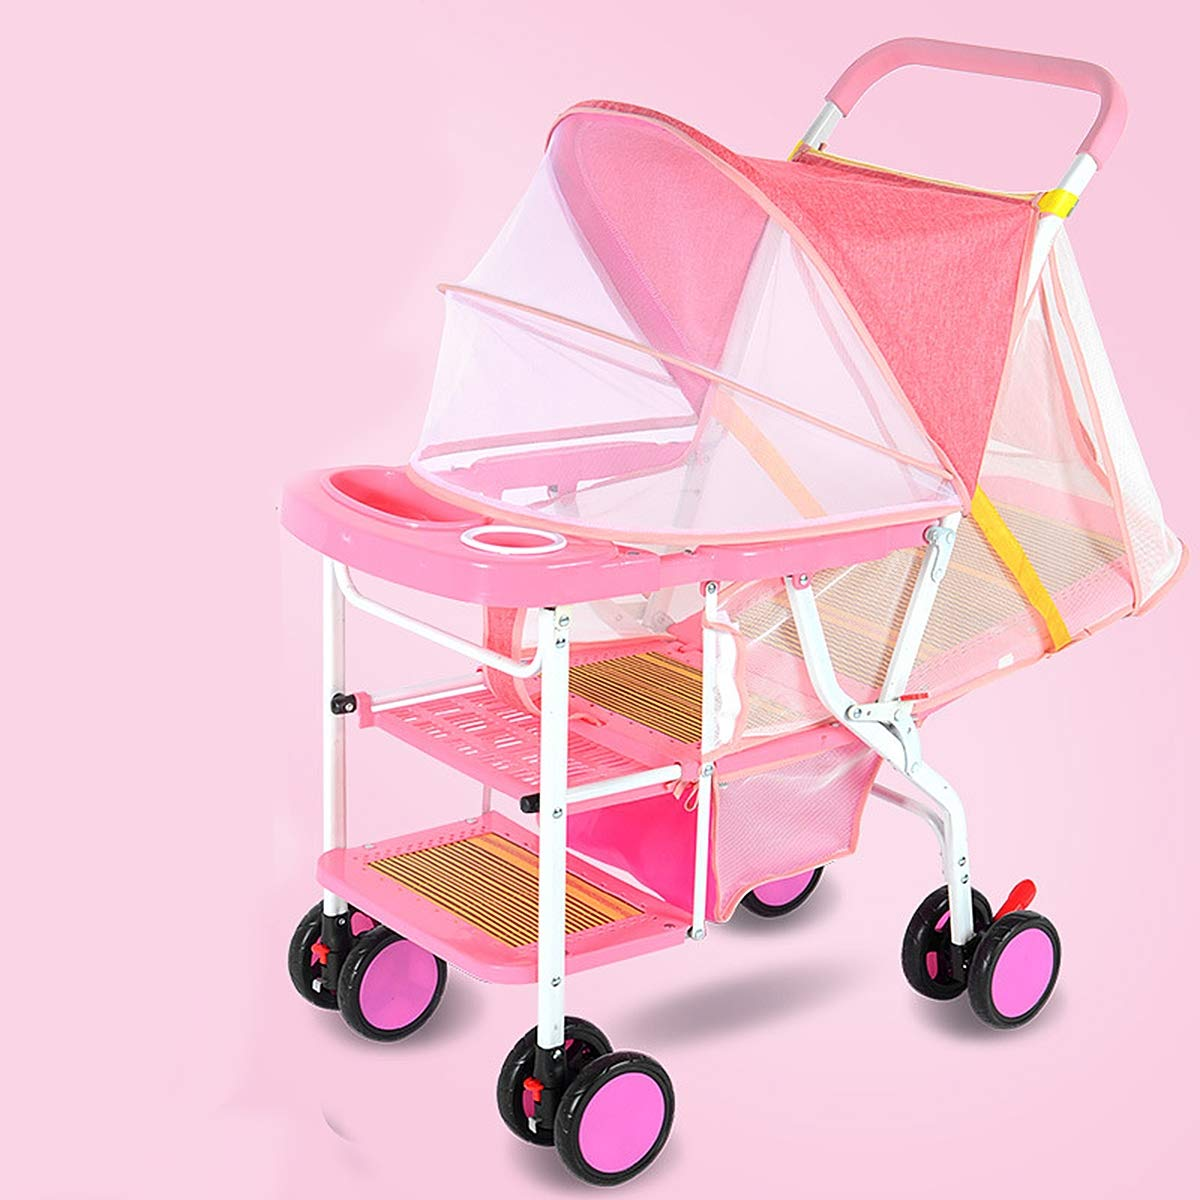 Eustoma Bamboo Baby Stroller Foldable, Light Portable Baby Carriage Retractable Pedal Integrated Mosquito Net Adjustable Shade Cloth,Pink by Eustoma (Image #1)